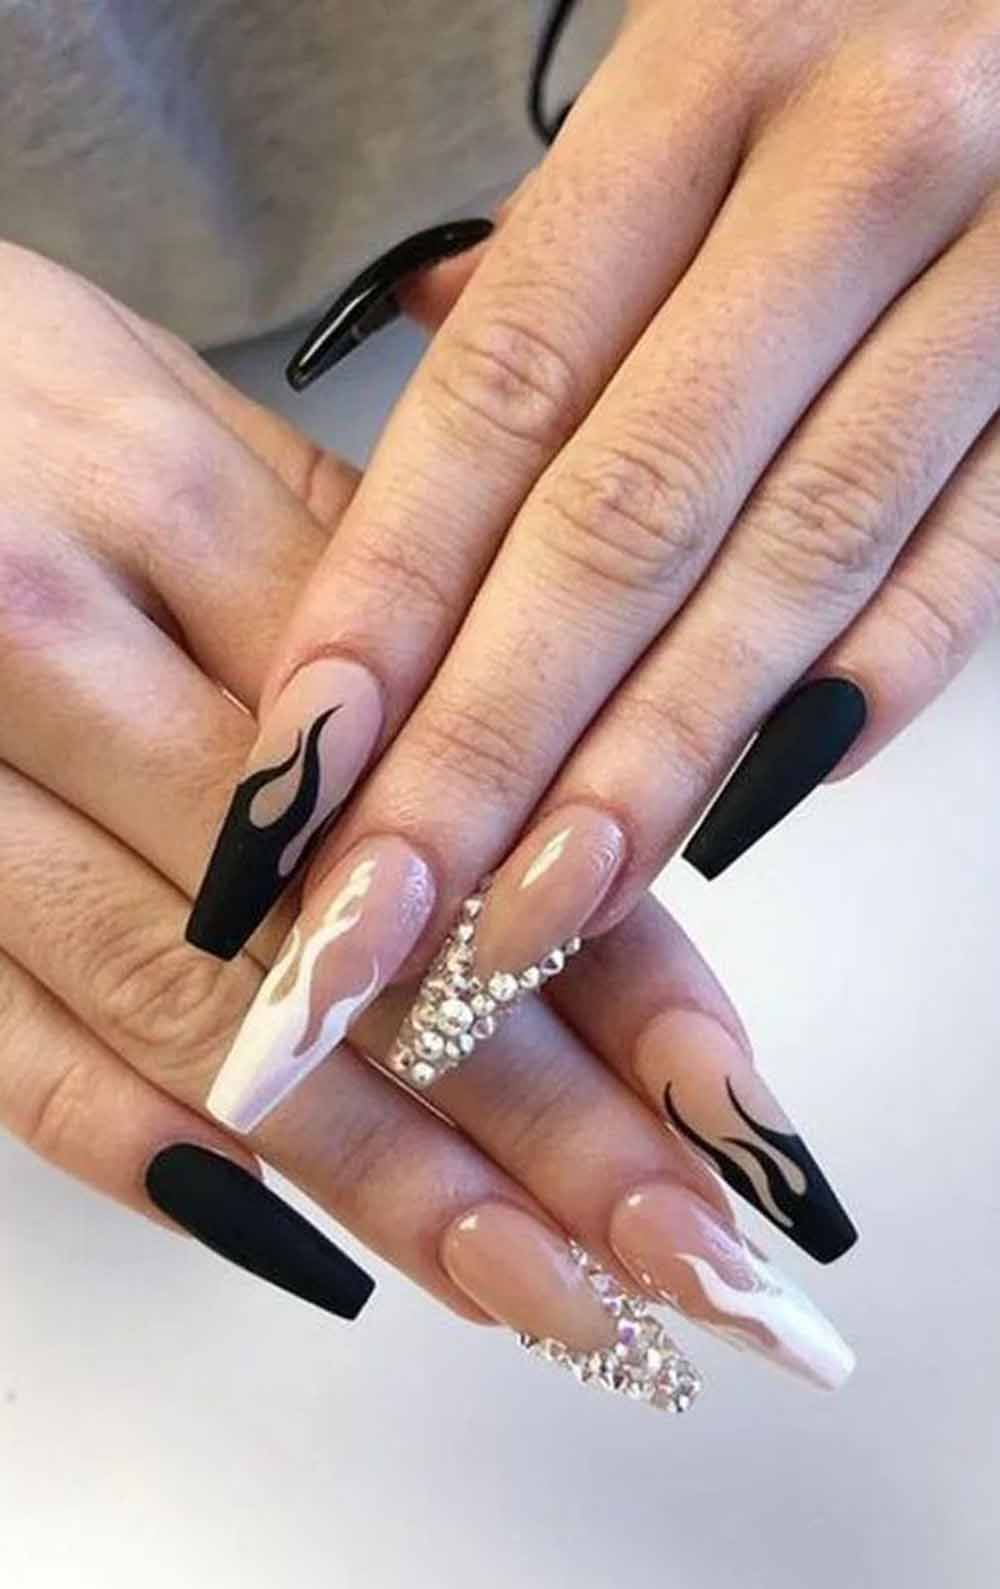 13 Coffin Long Nail Designs Using Ombre Black Color You Should Go For In 2020 Edgy Nails Stylish Nails Black Acrylic Nails